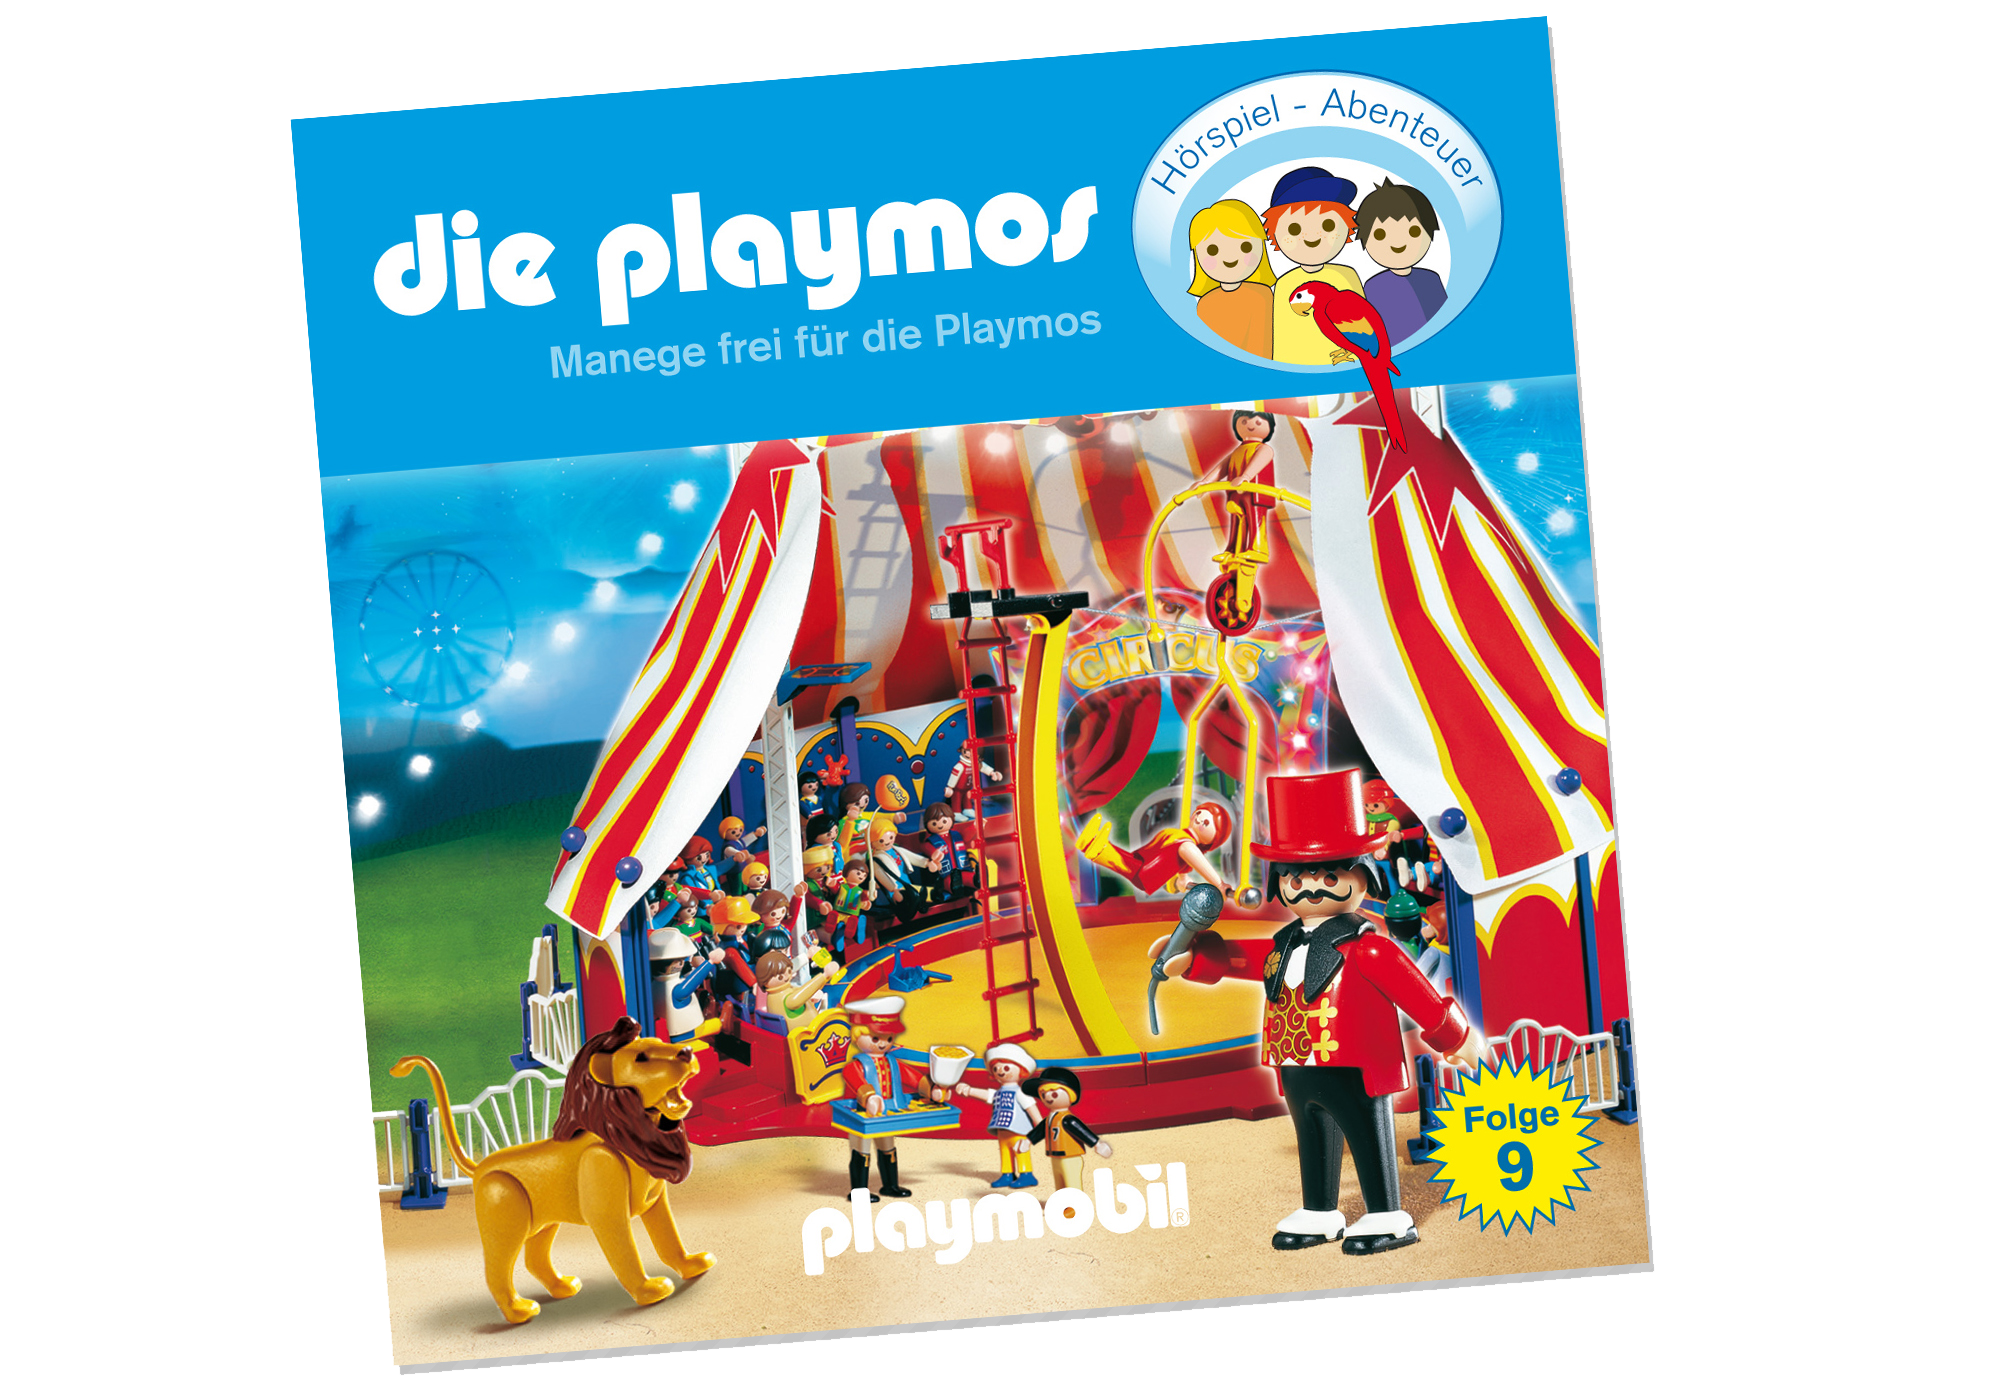 http://media.playmobil.com/i/playmobil/80186_product_detail/Manege frei für die Playmos (9) - CD